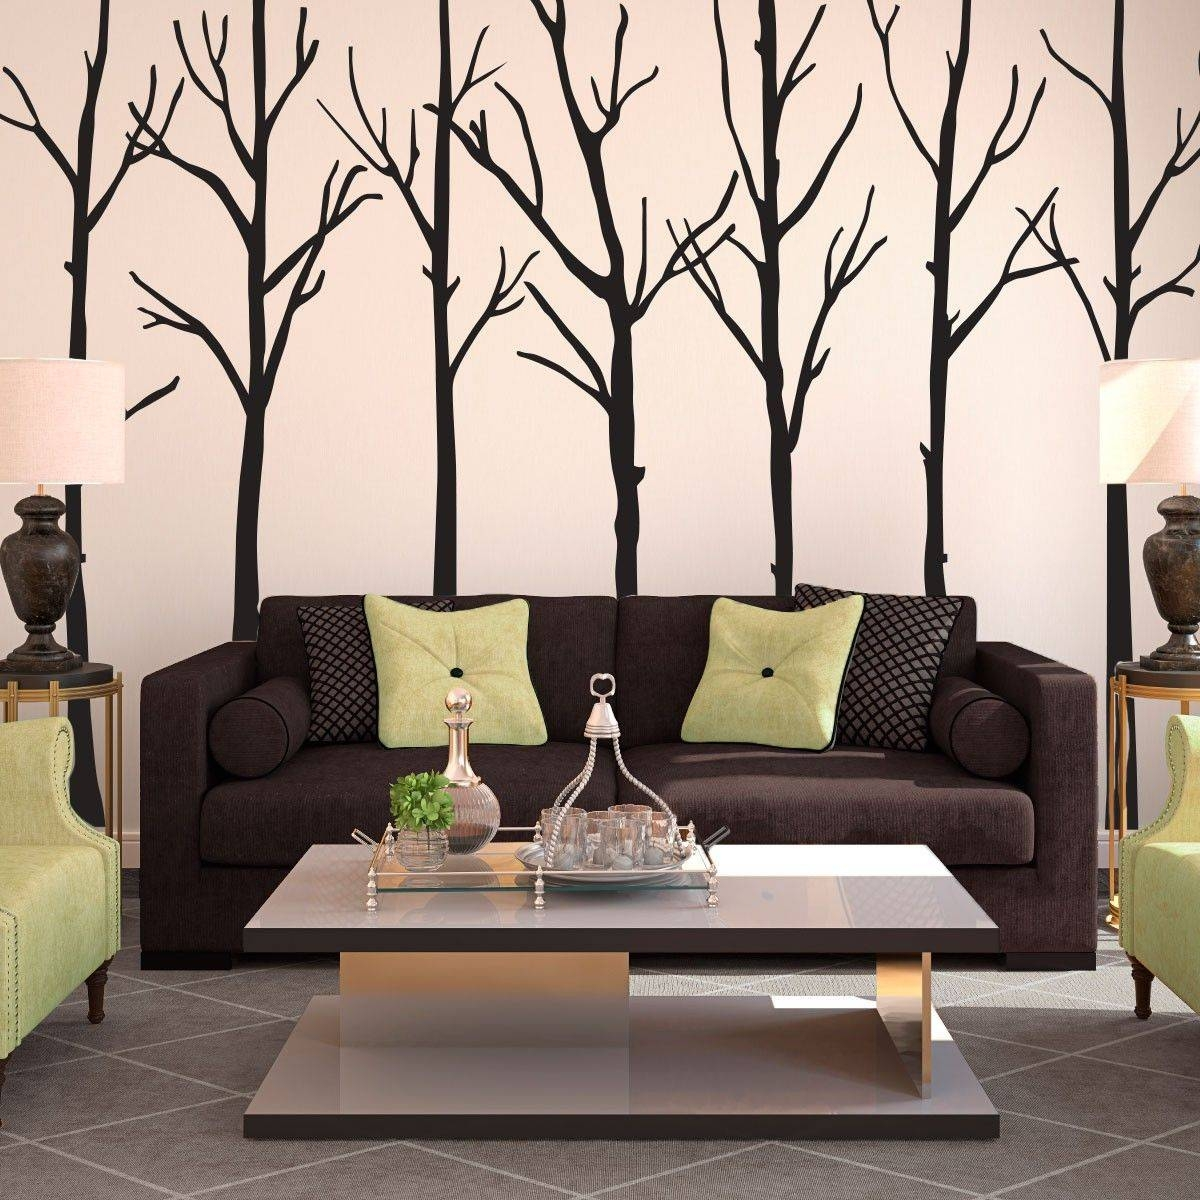 20 the best wall art for living room. Black Bedroom Furniture Sets. Home Design Ideas